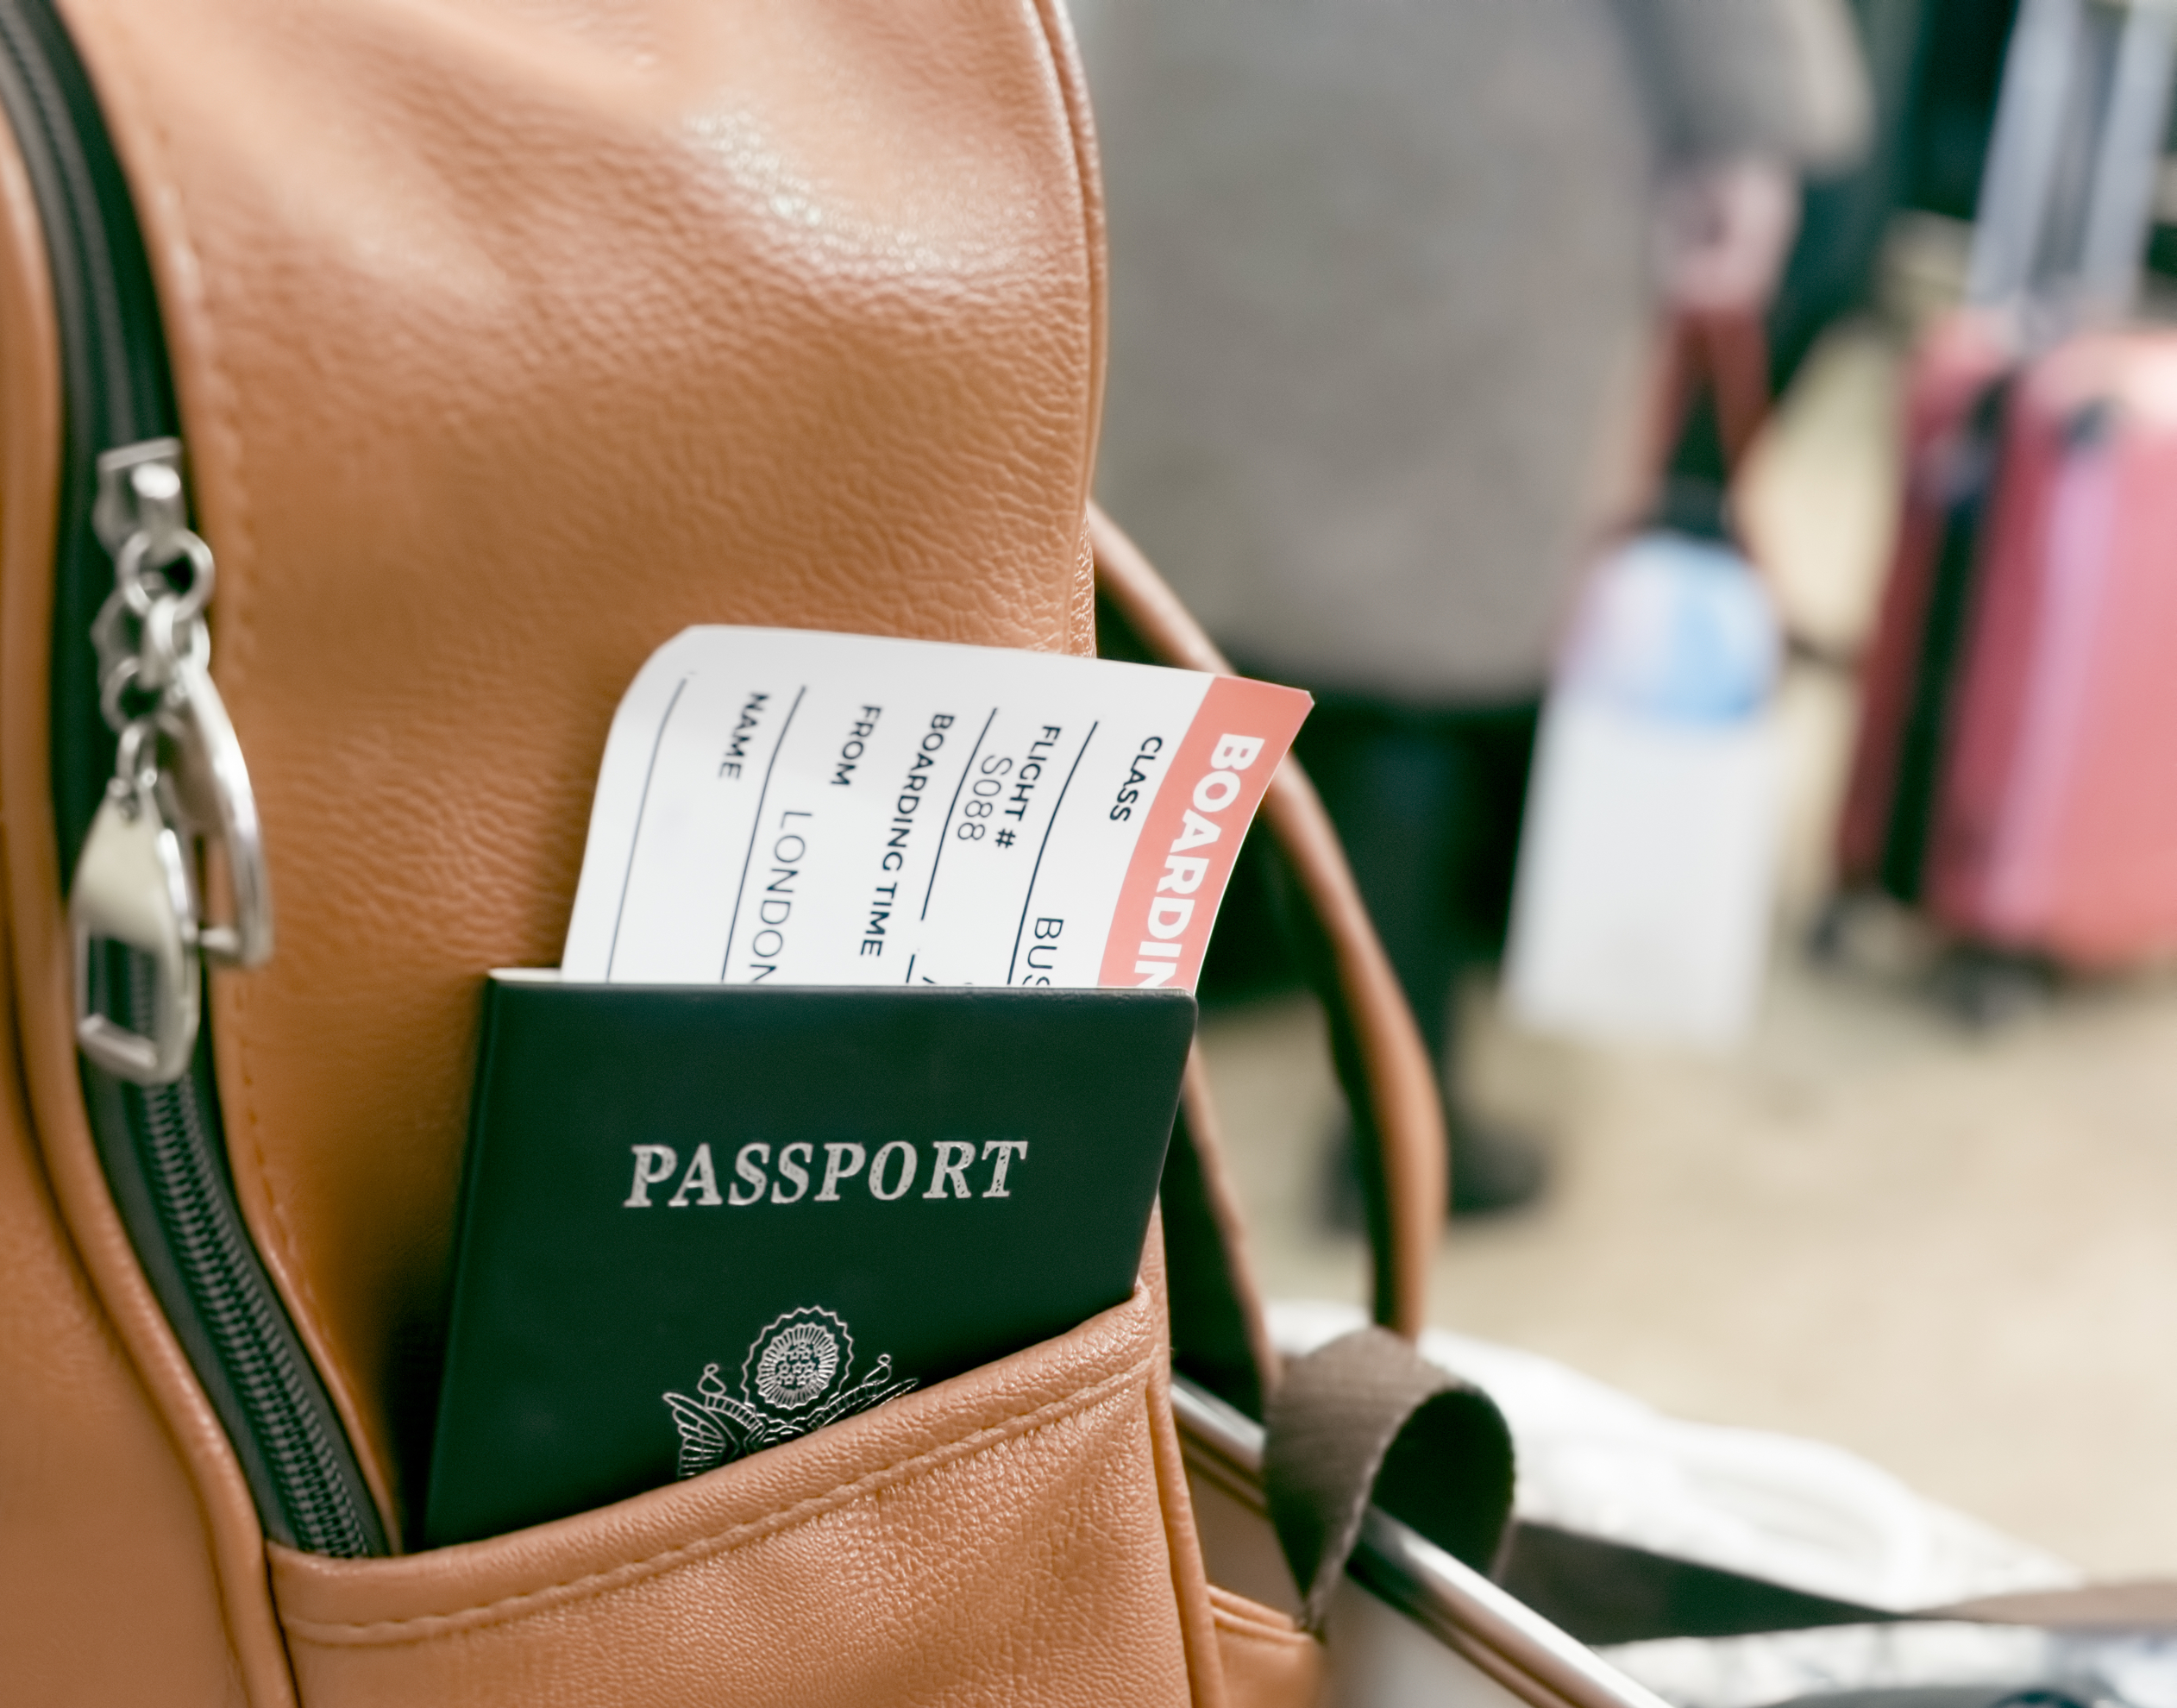 Passport-Bag-pocket.jpg?mtime=20180710122403#asset:102438